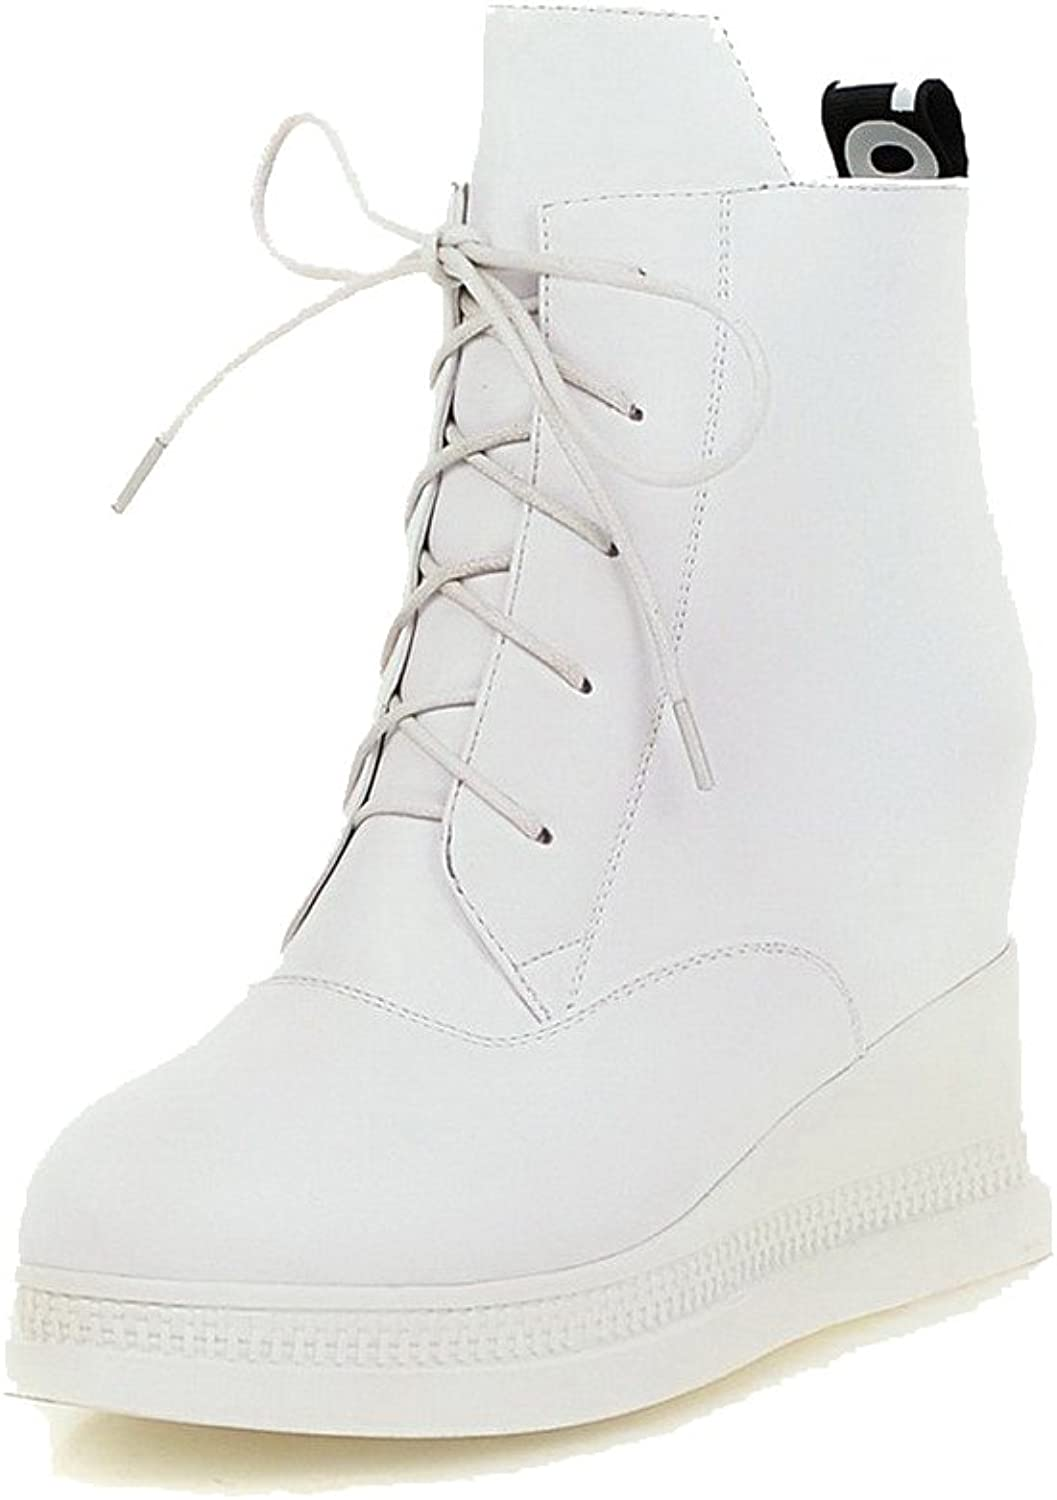 WeiPoot Women's Solid High-Heels Round Closed Toe PU Zipper Boots